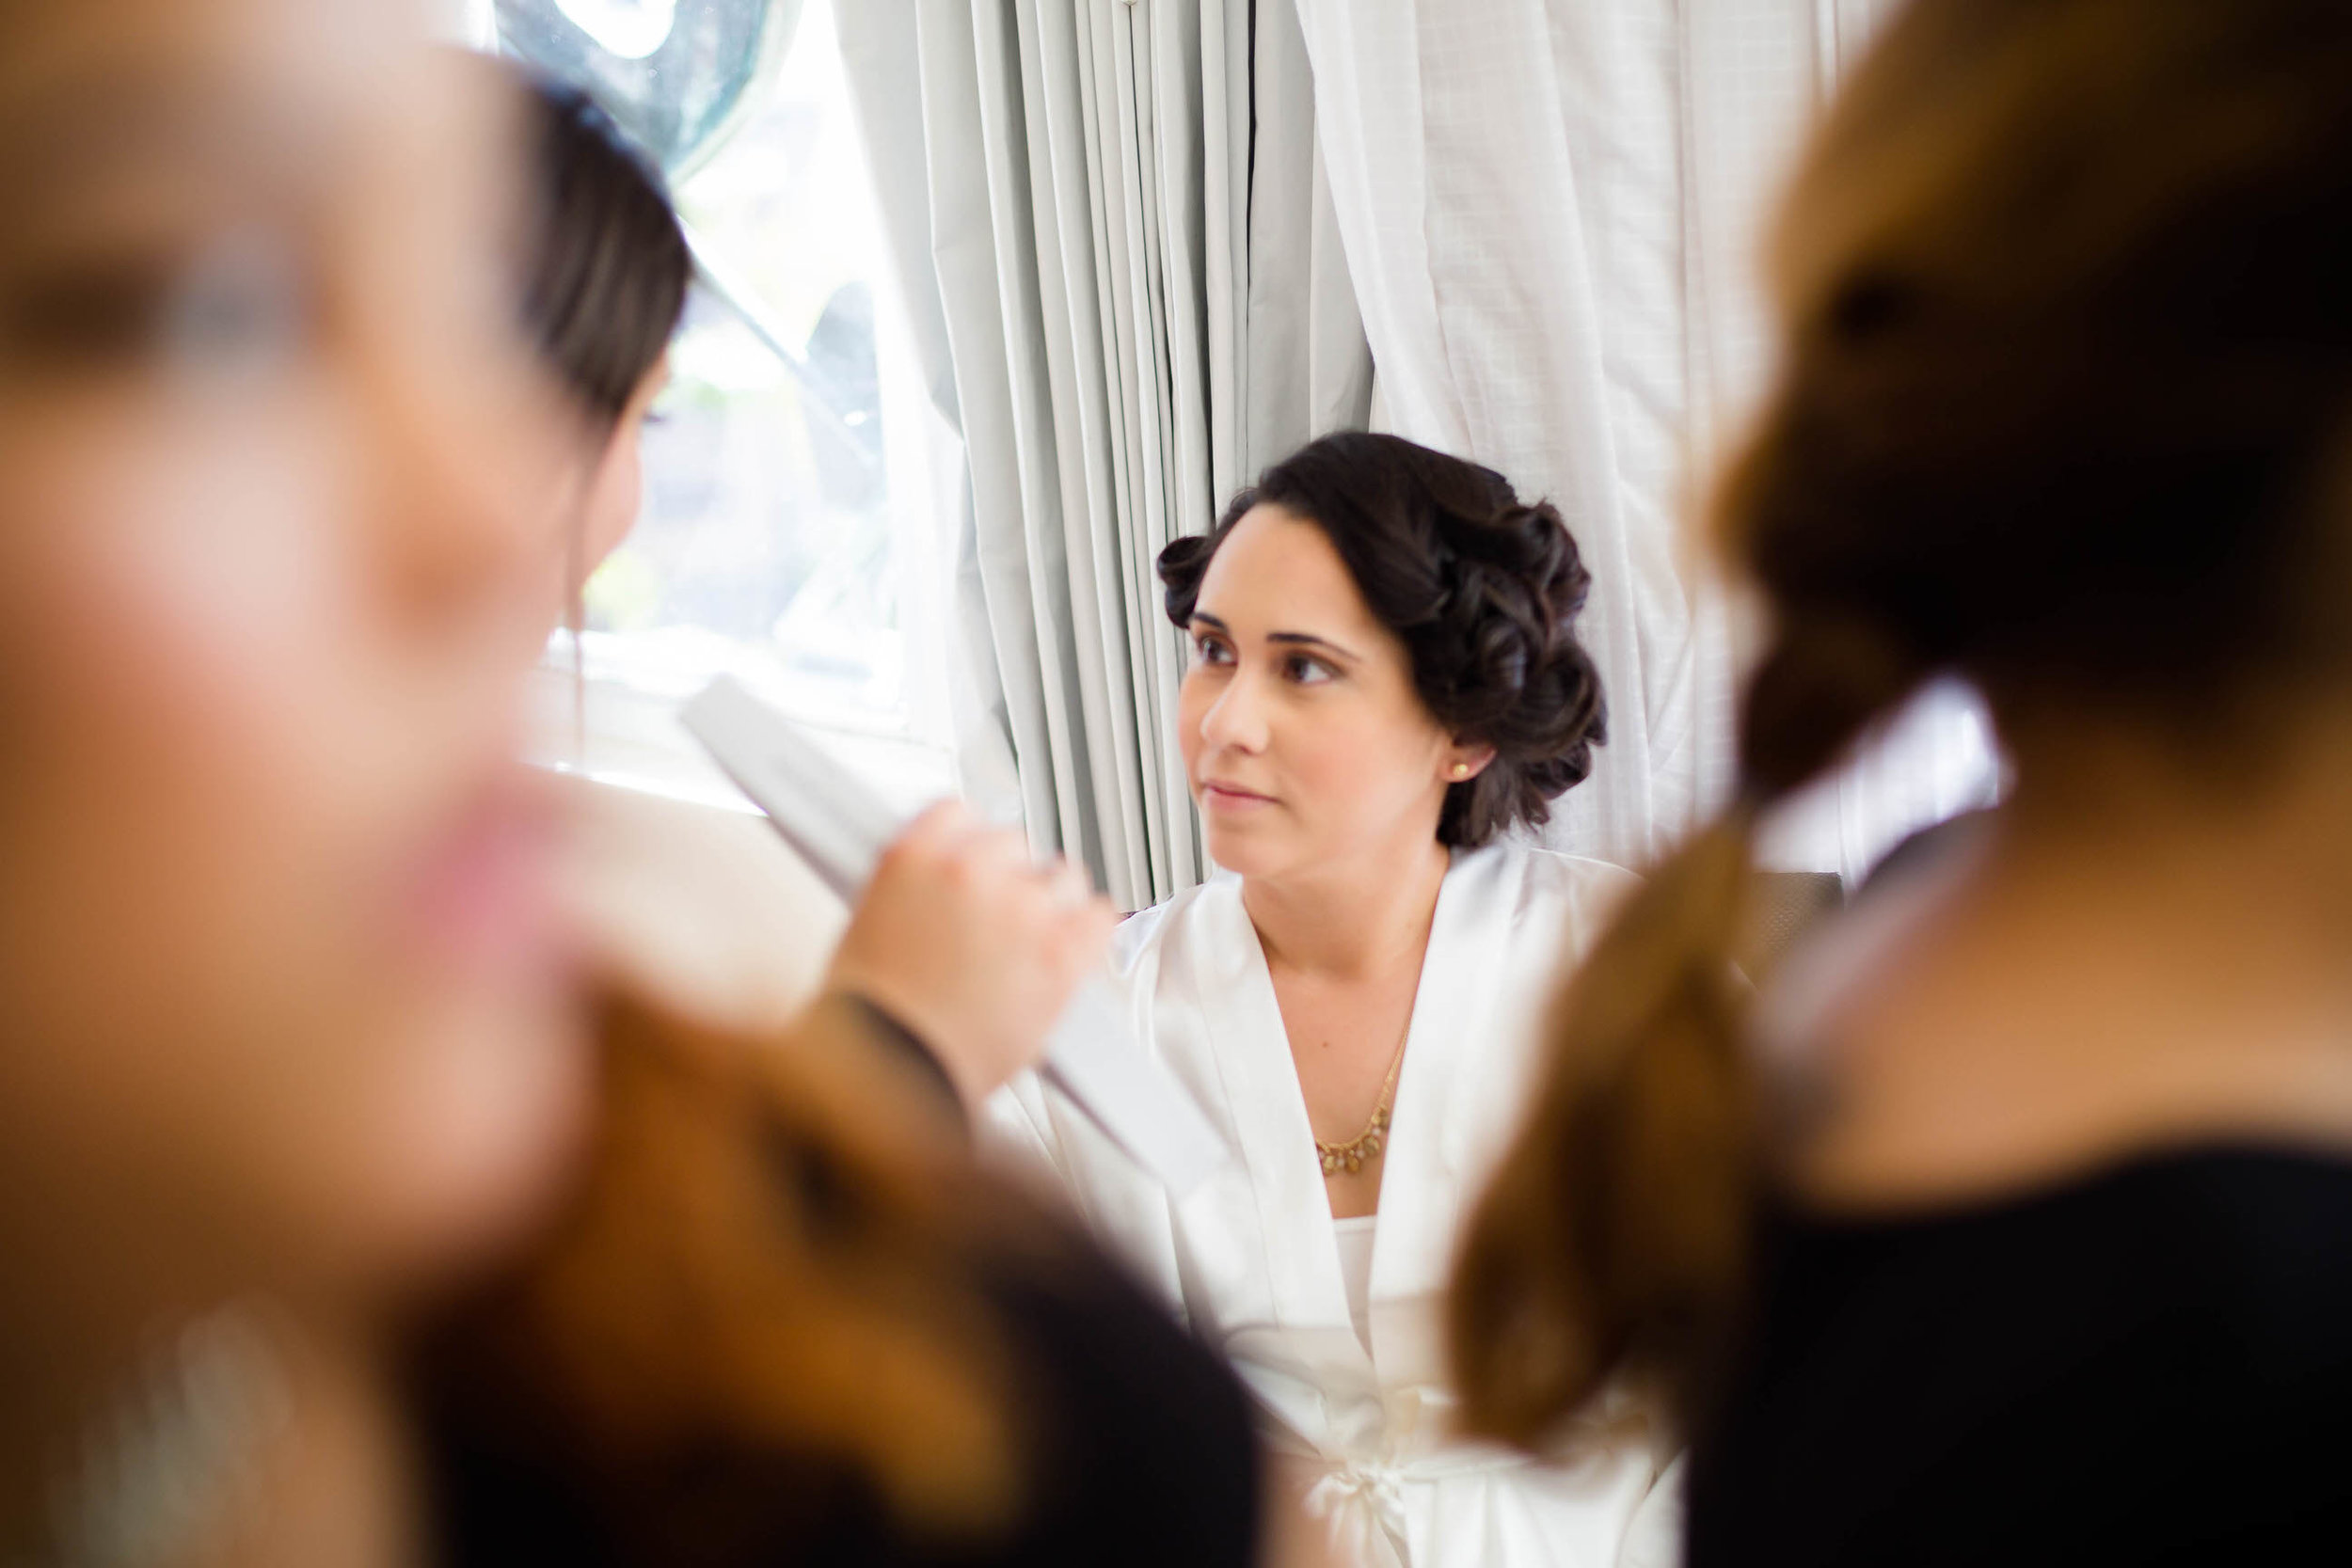 wedding-day-getting-ready-pampering-bride-tiny-house-photo.jpg